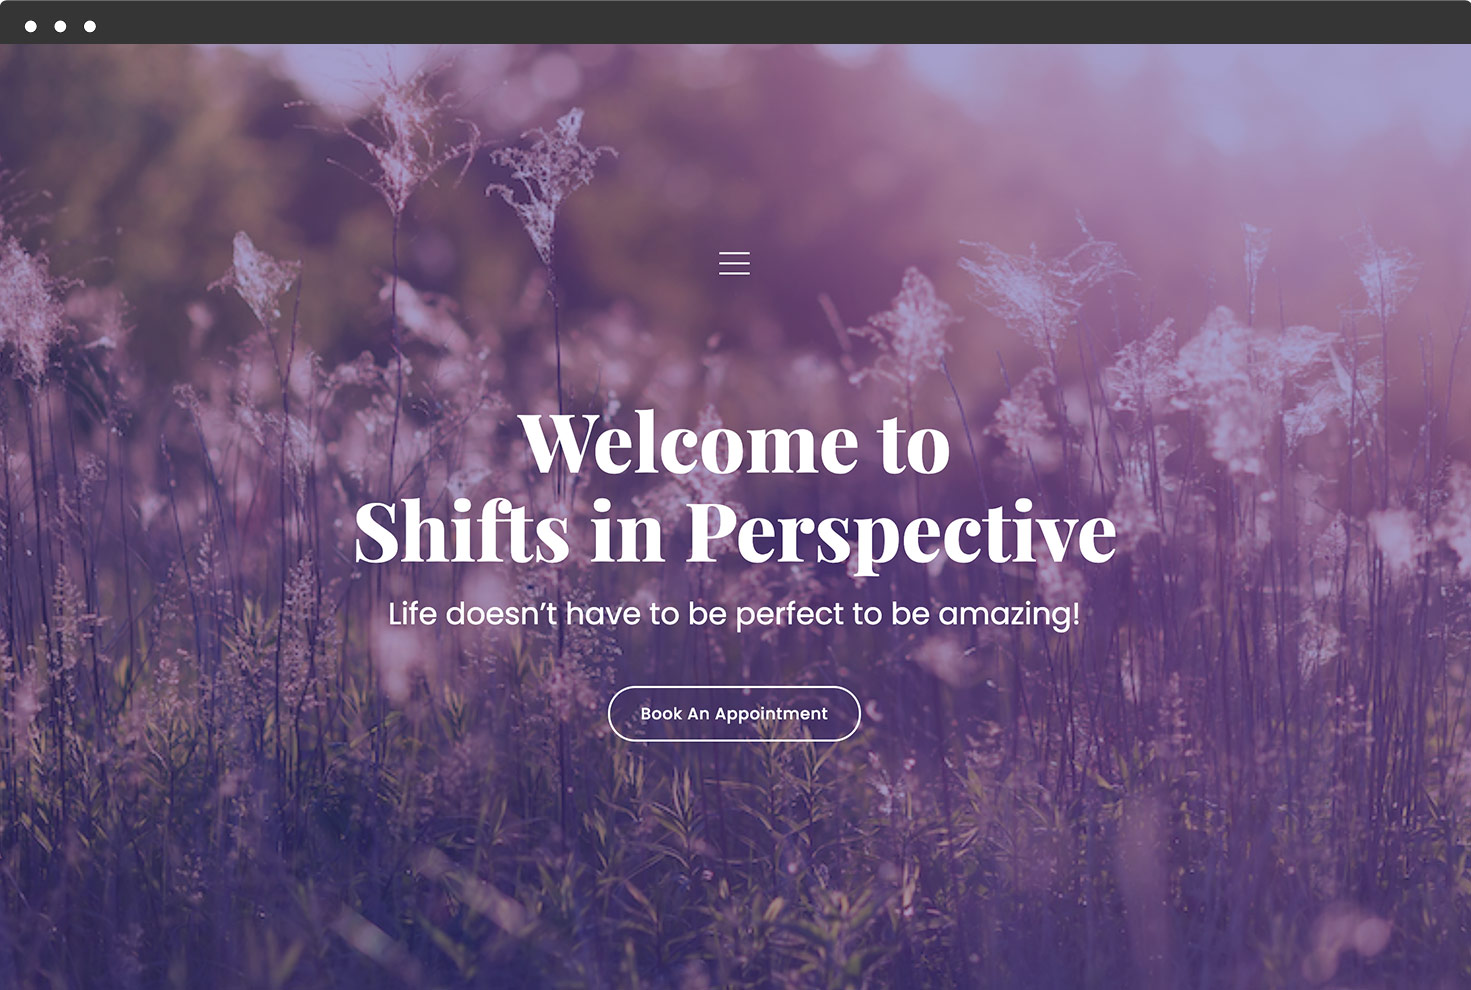 Image of Shifts in Perspective's Website